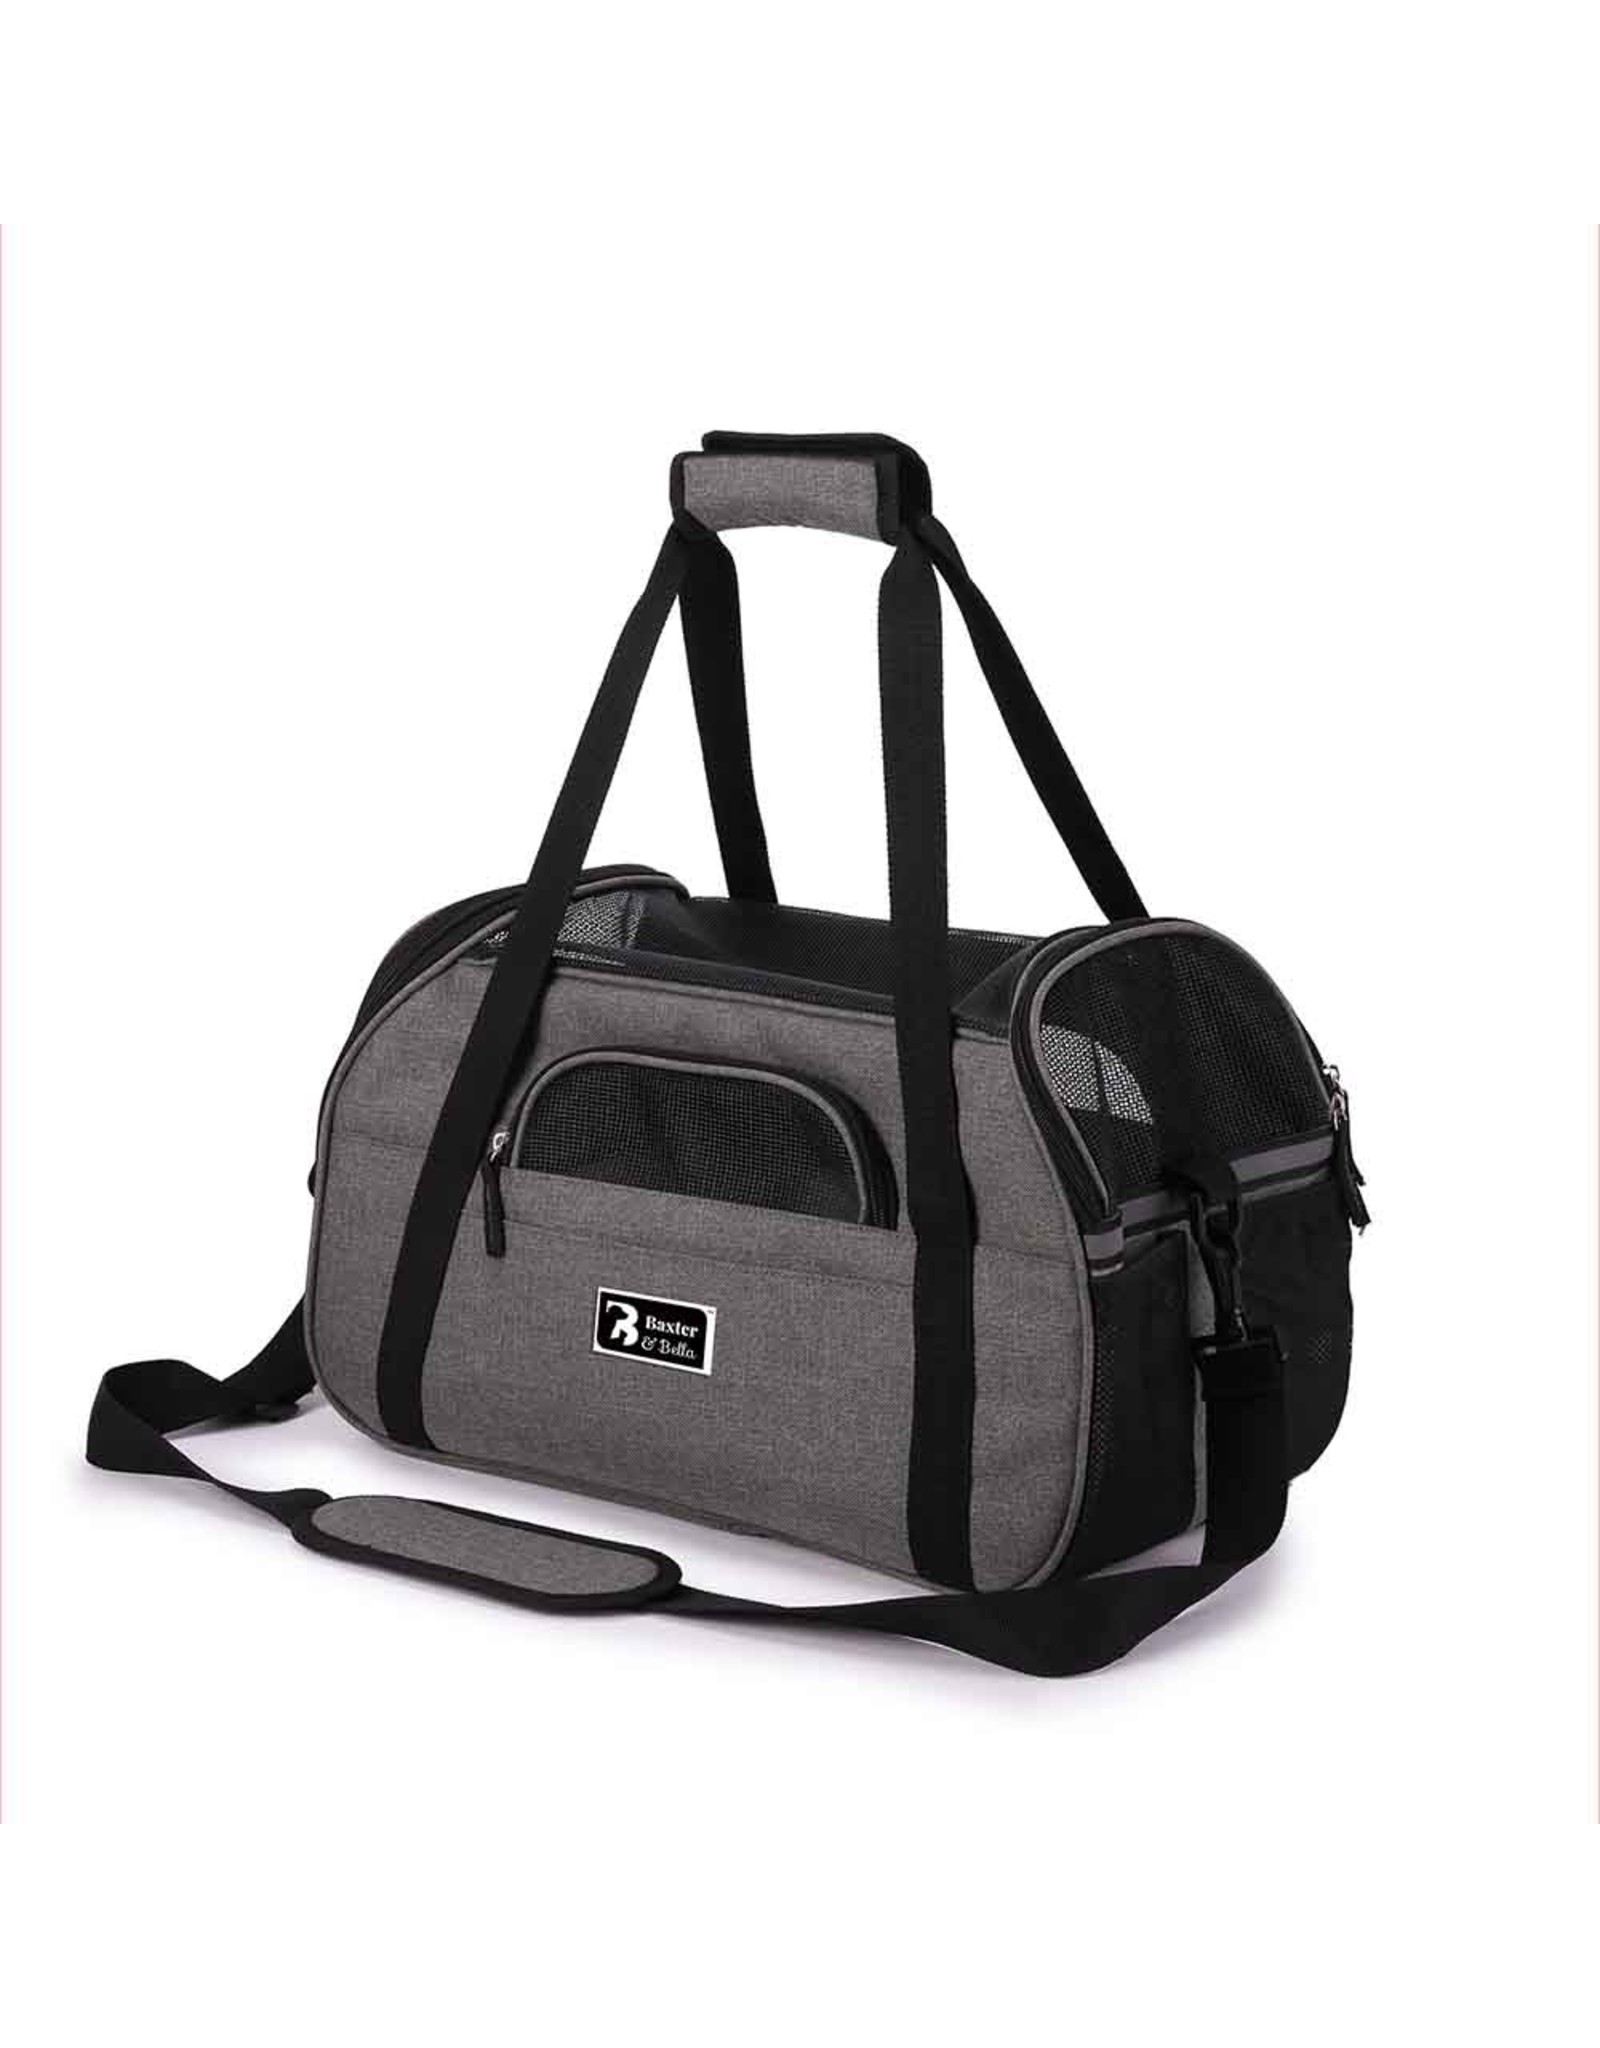 Baxter & Bella Soft Carrier (Small - 16x8x11.5in)